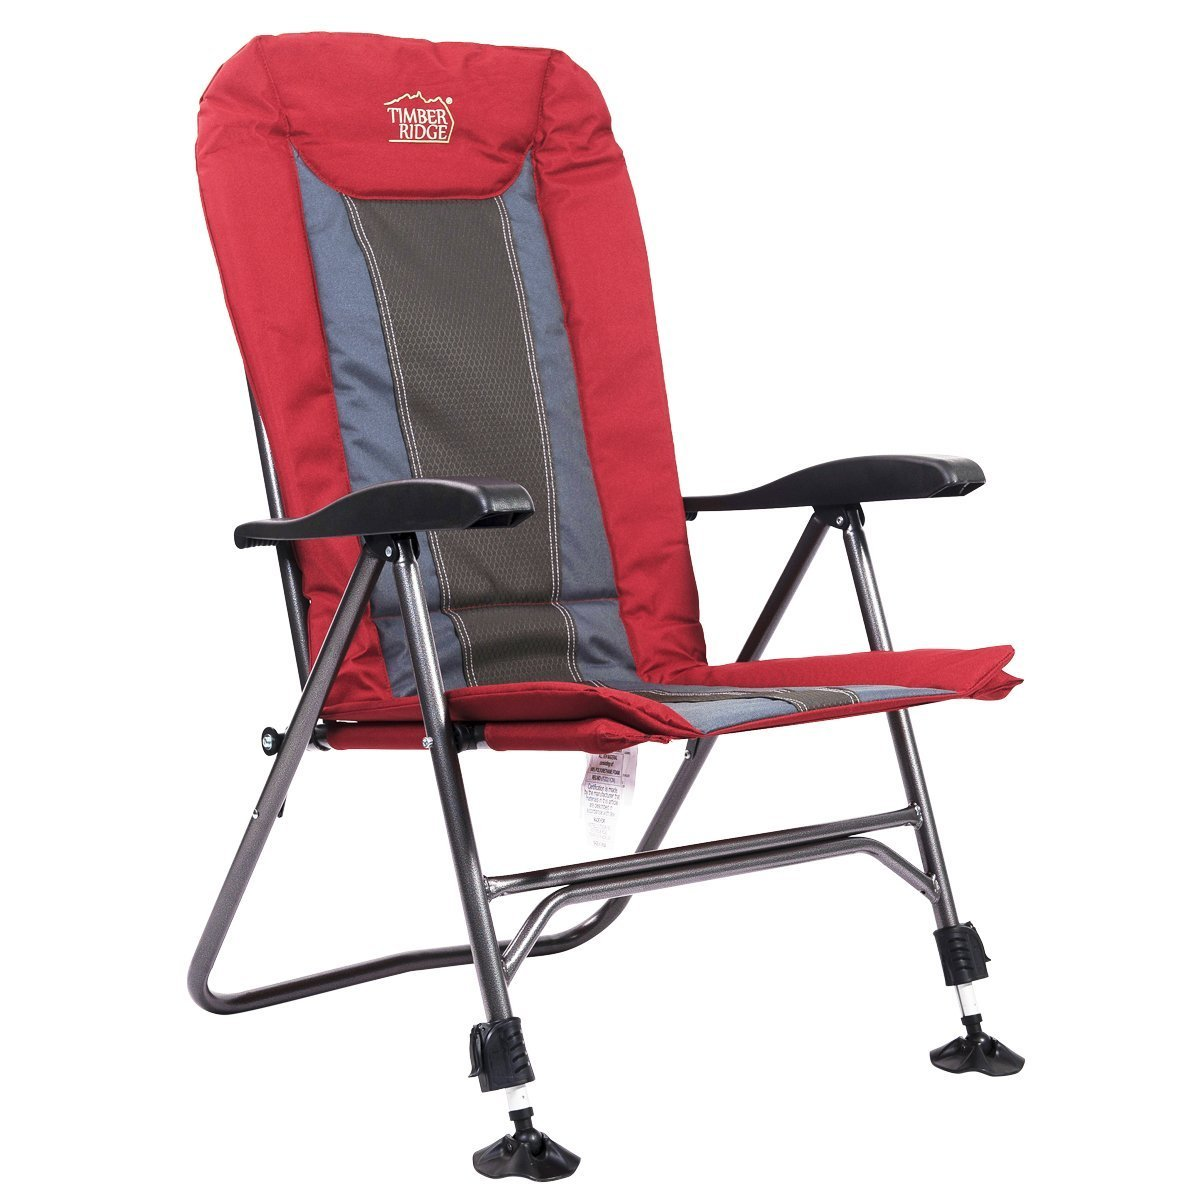 Timber Ridge TRFCH011LA Camping Chair Folding Heavy Duty with Adjustable Reclining Padded Back and Legs Supports 300lbs for Fishing and Garden, Lava by Timber Ridge